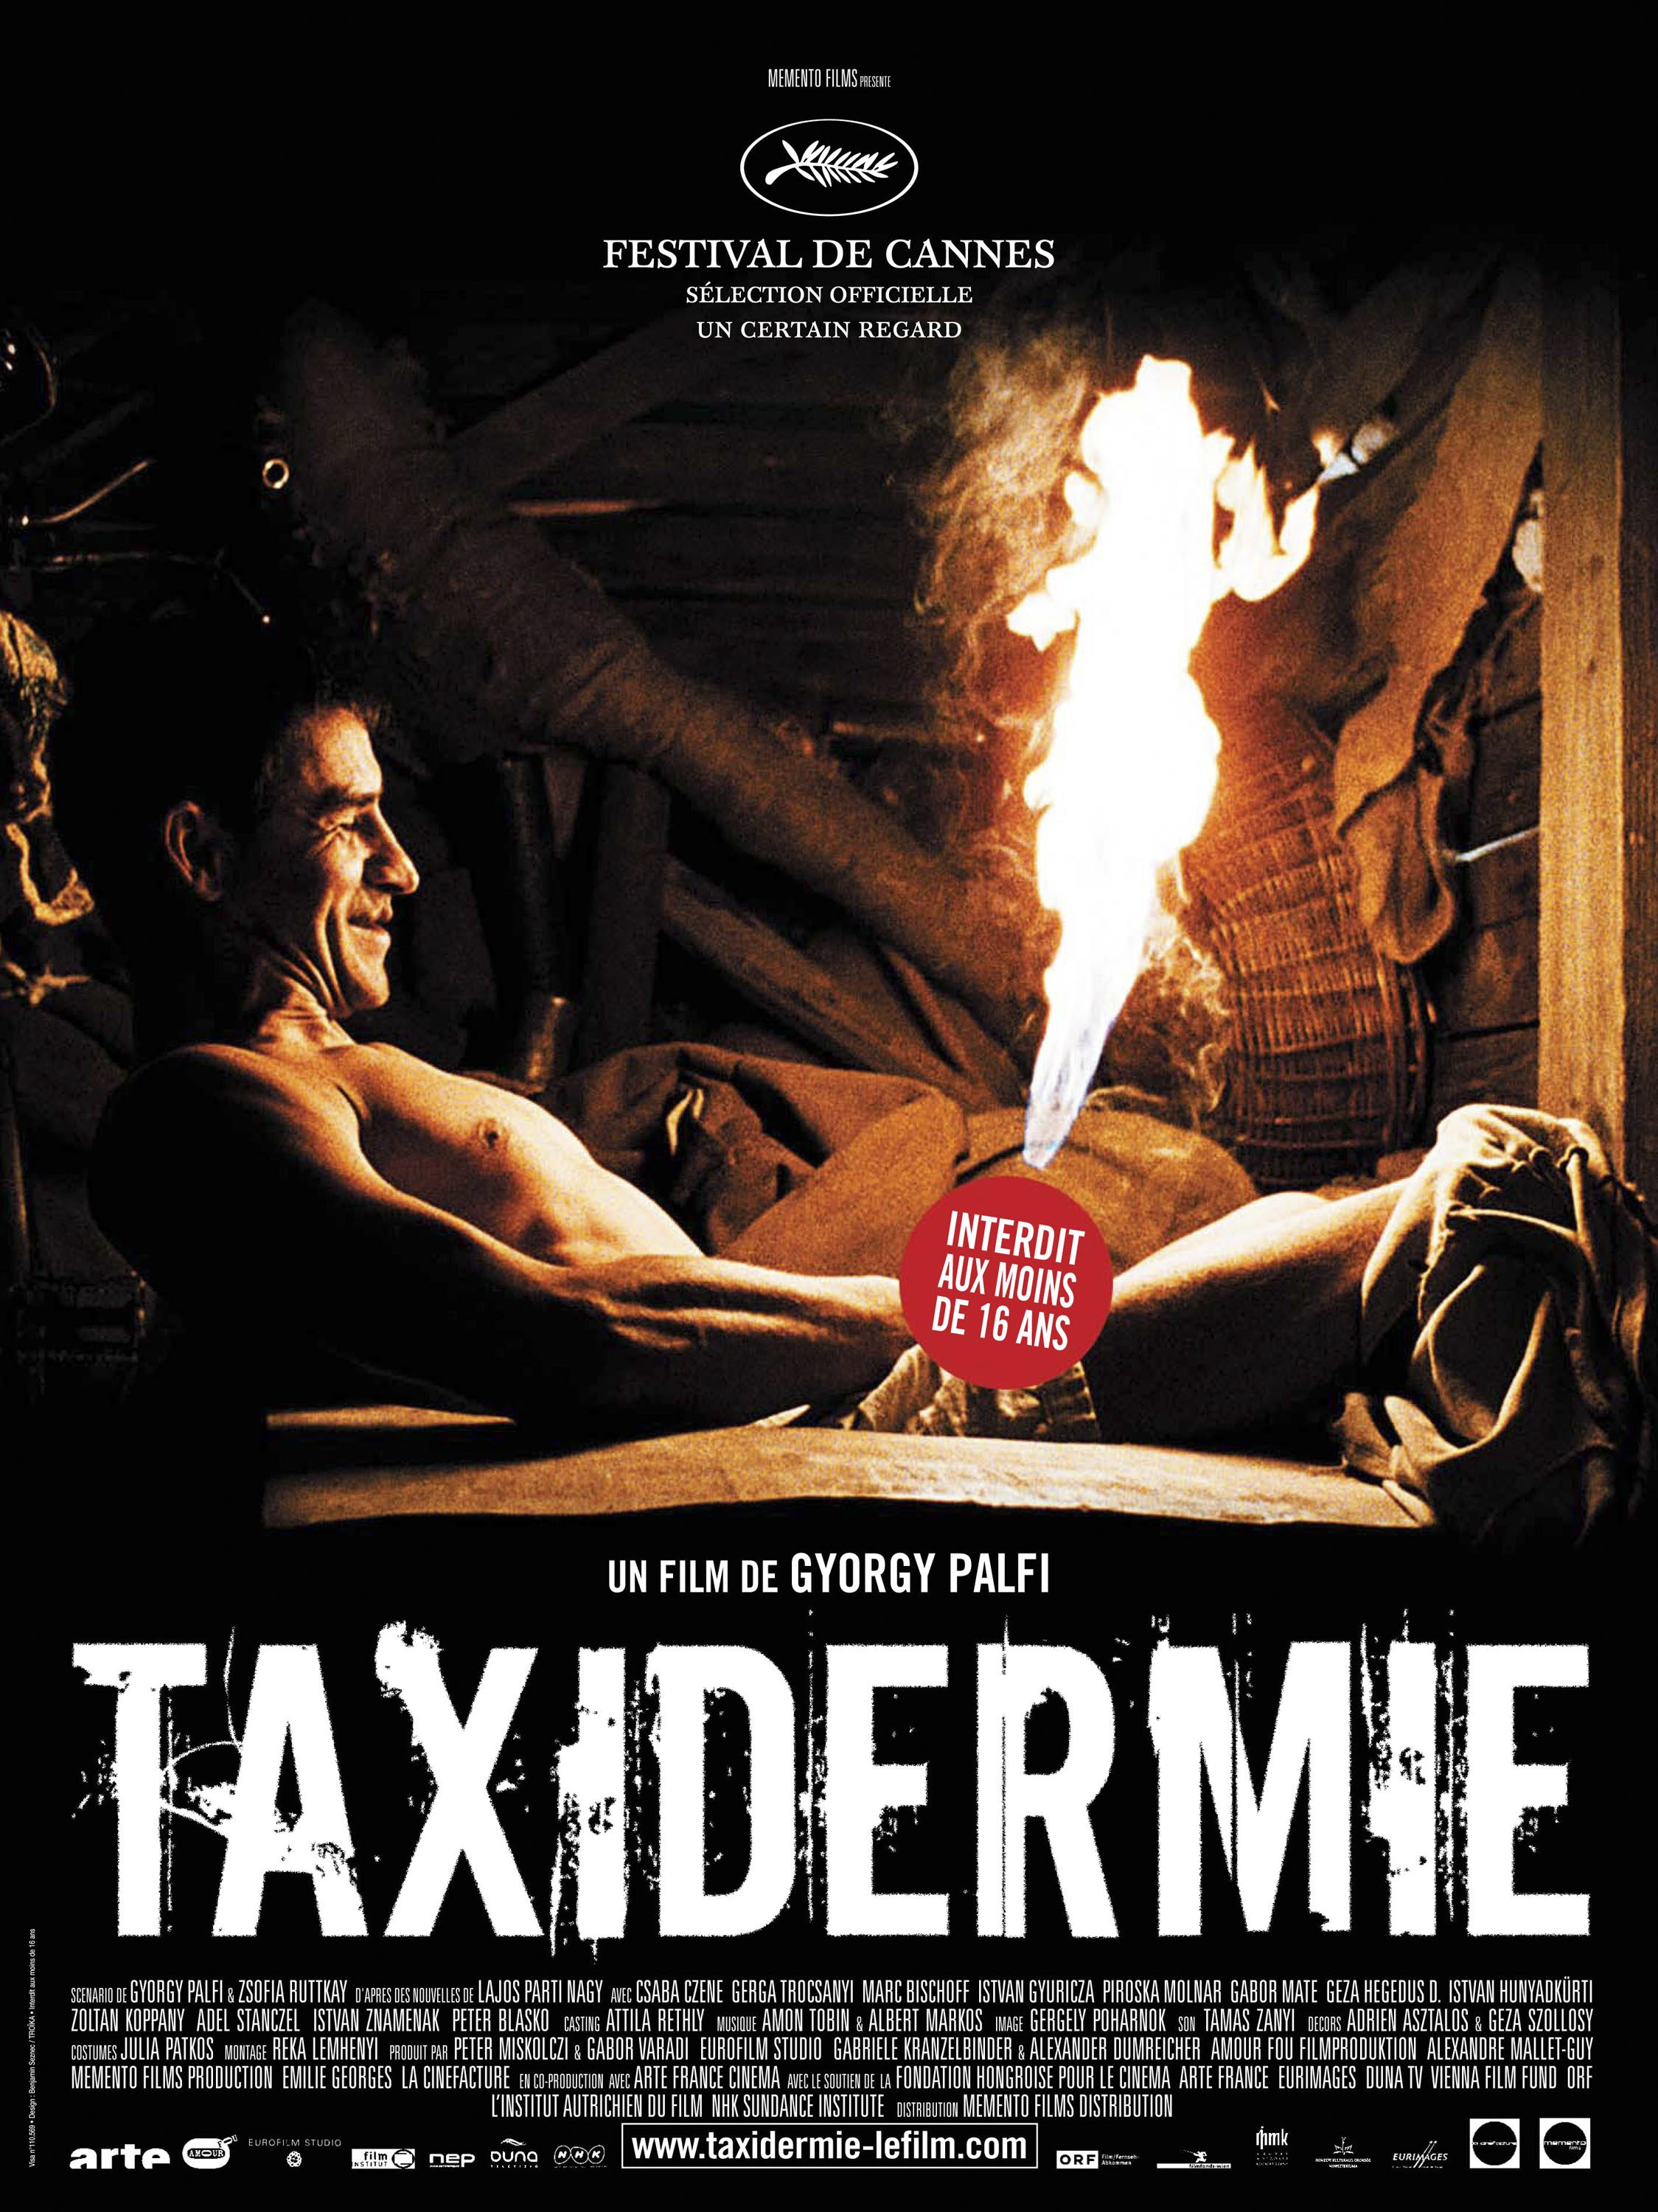 taxidermie film